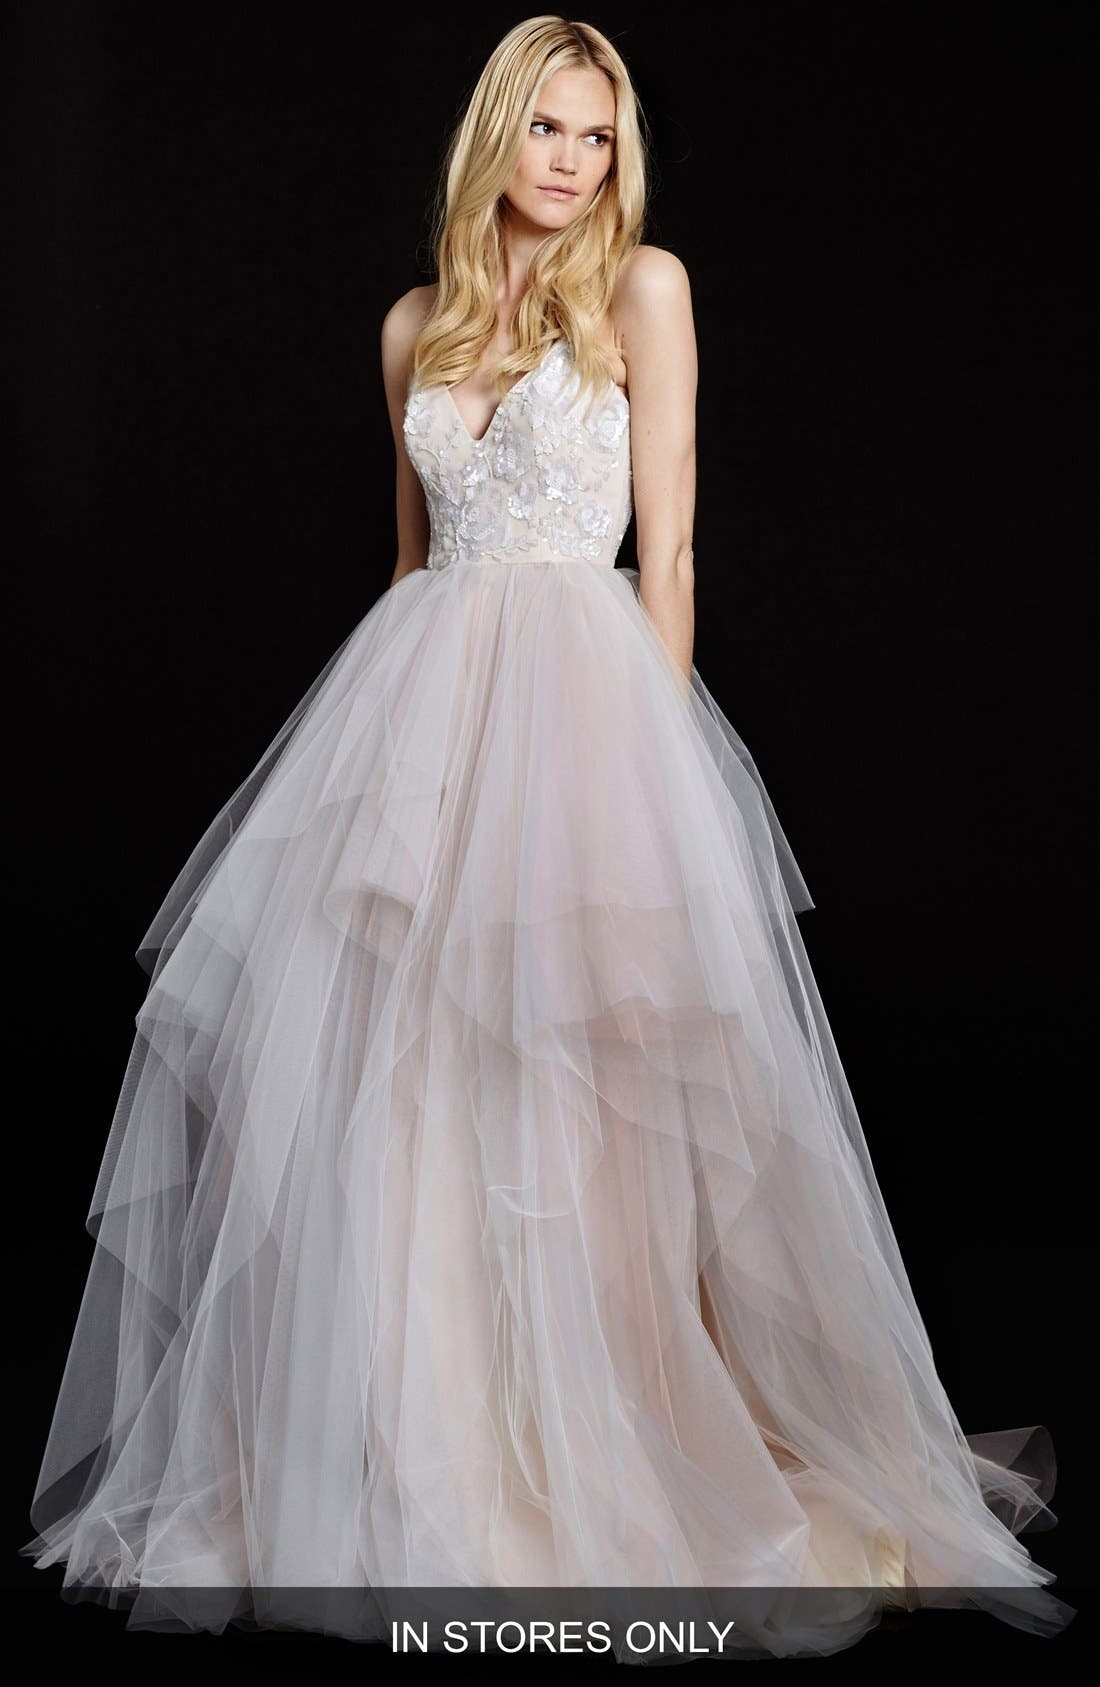 Nicoletta Floral Sequin Bodice Tiered Tulle Gown,                             Main thumbnail 1, color,                             ALABASTER